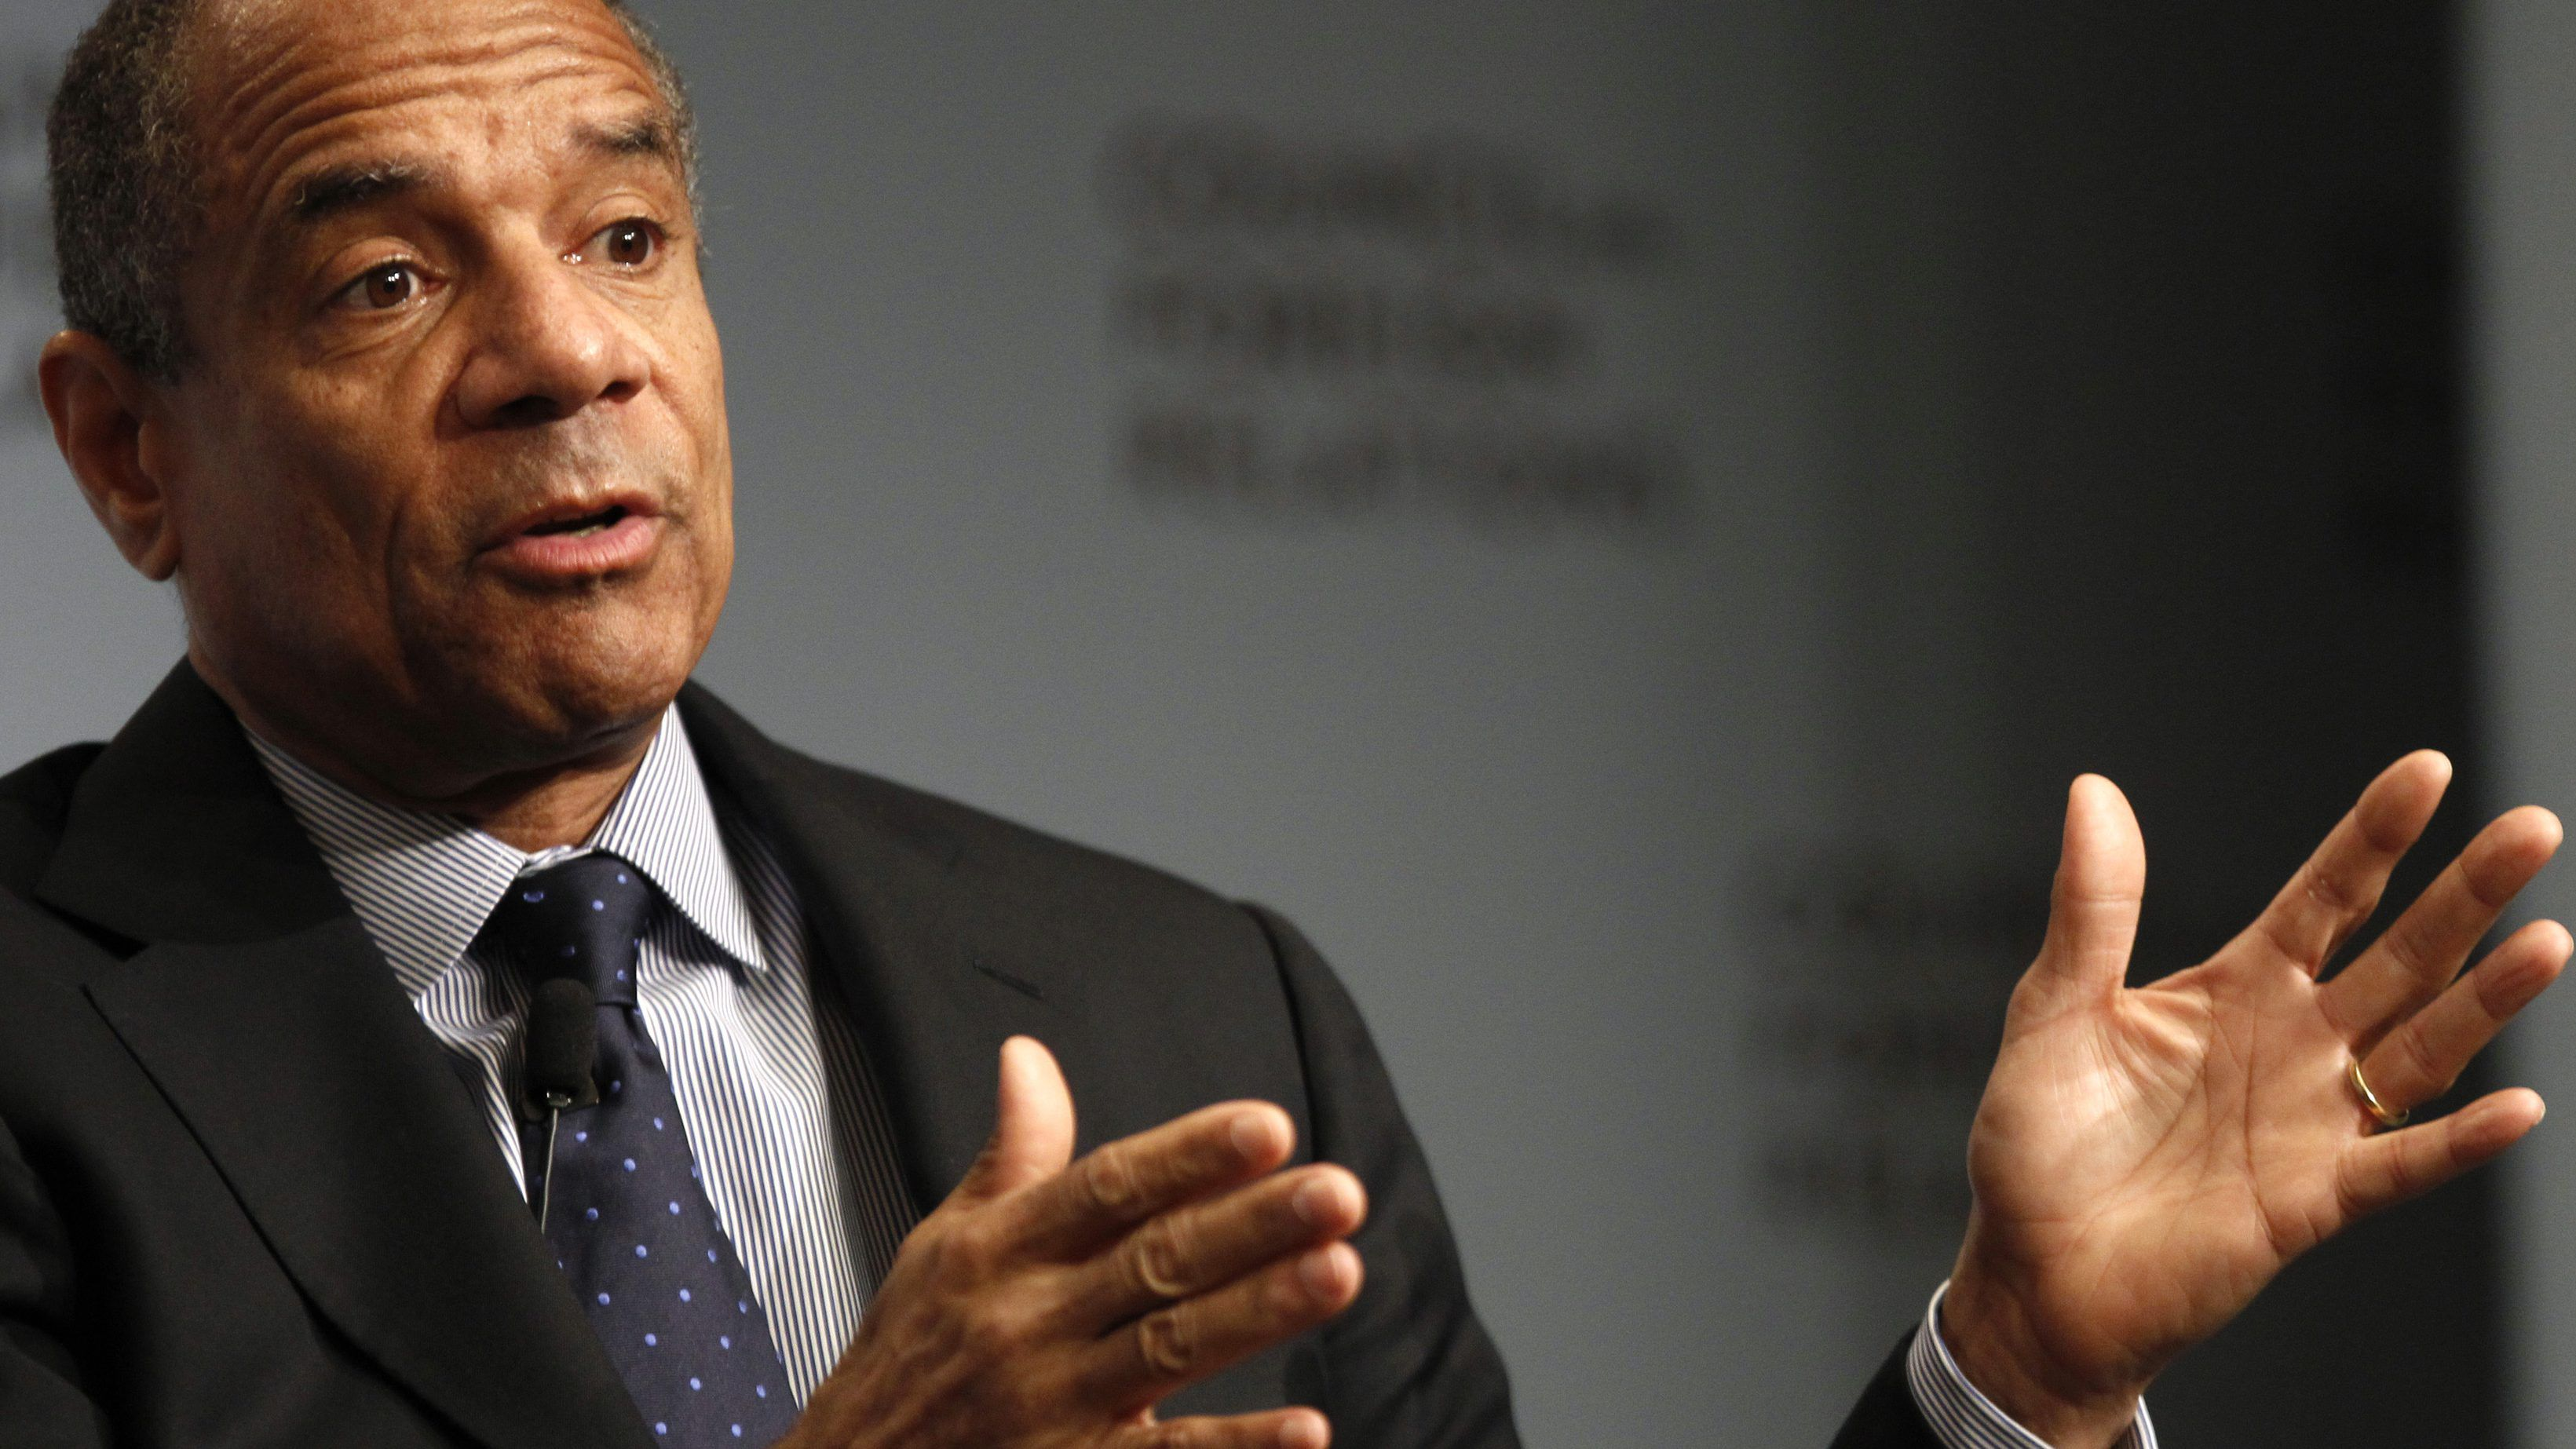 Facebook names Amex CEO Kenneth Chenault